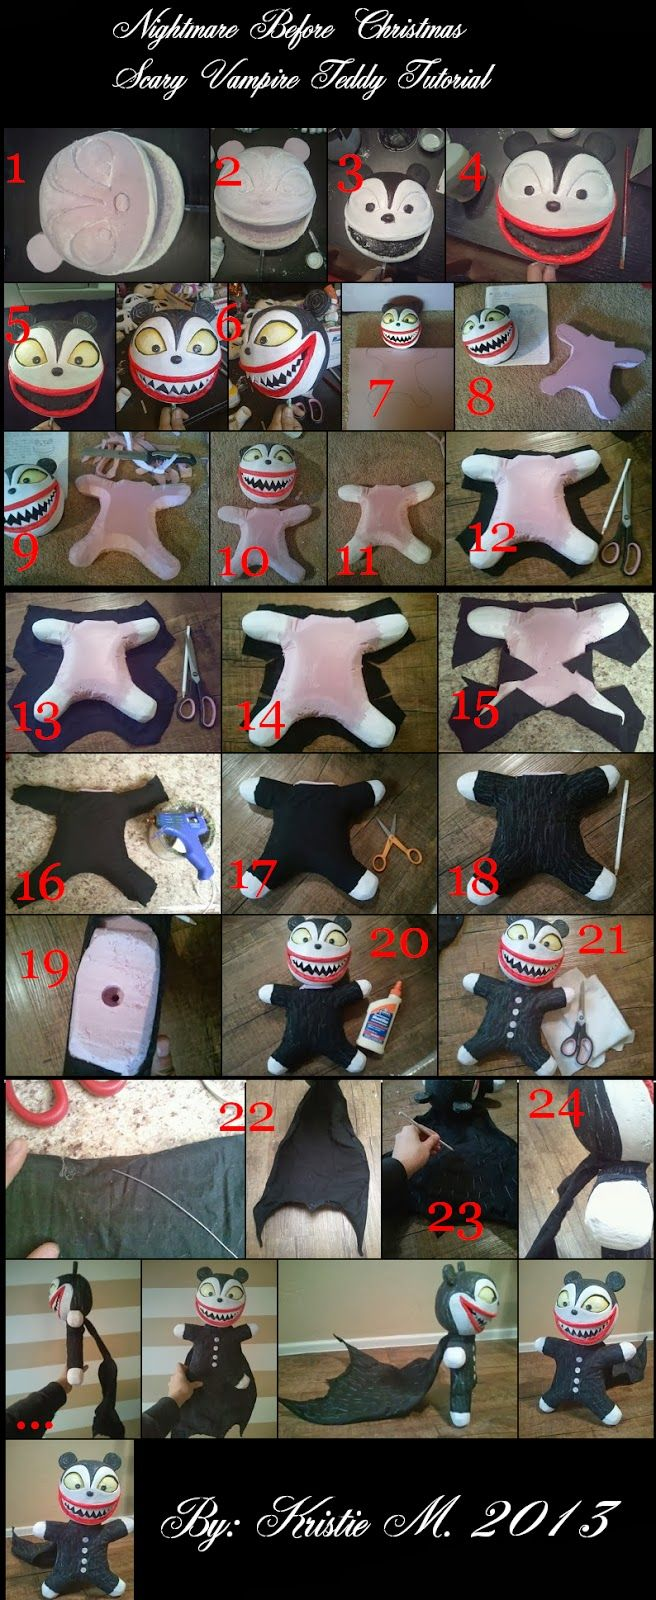 DIY Nightmare Before Christmas Halloween Props: Nightmare Before Christmas Scary Vampire Teddy Toy Tutorial